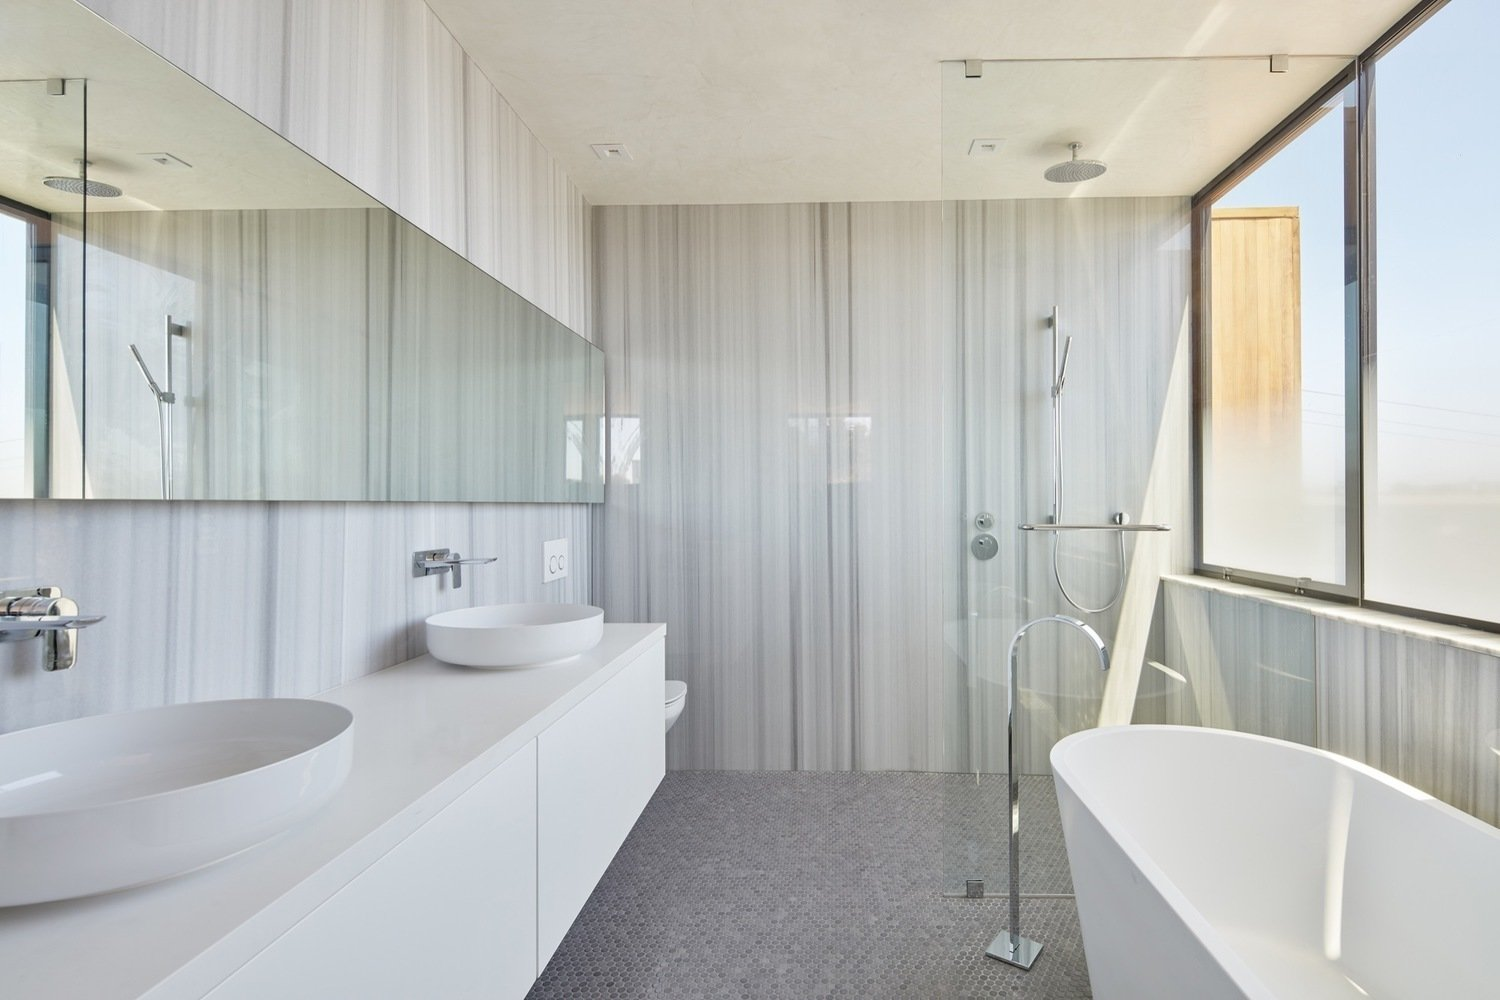 Bathroom Tagged: Bath Room, Engineered Quartz Counter, Ceramic Tile Floor, Vessel Sink, Freestanding Tub, Soaking Tub, and Open Shower.  Noe Valley House by Leibal